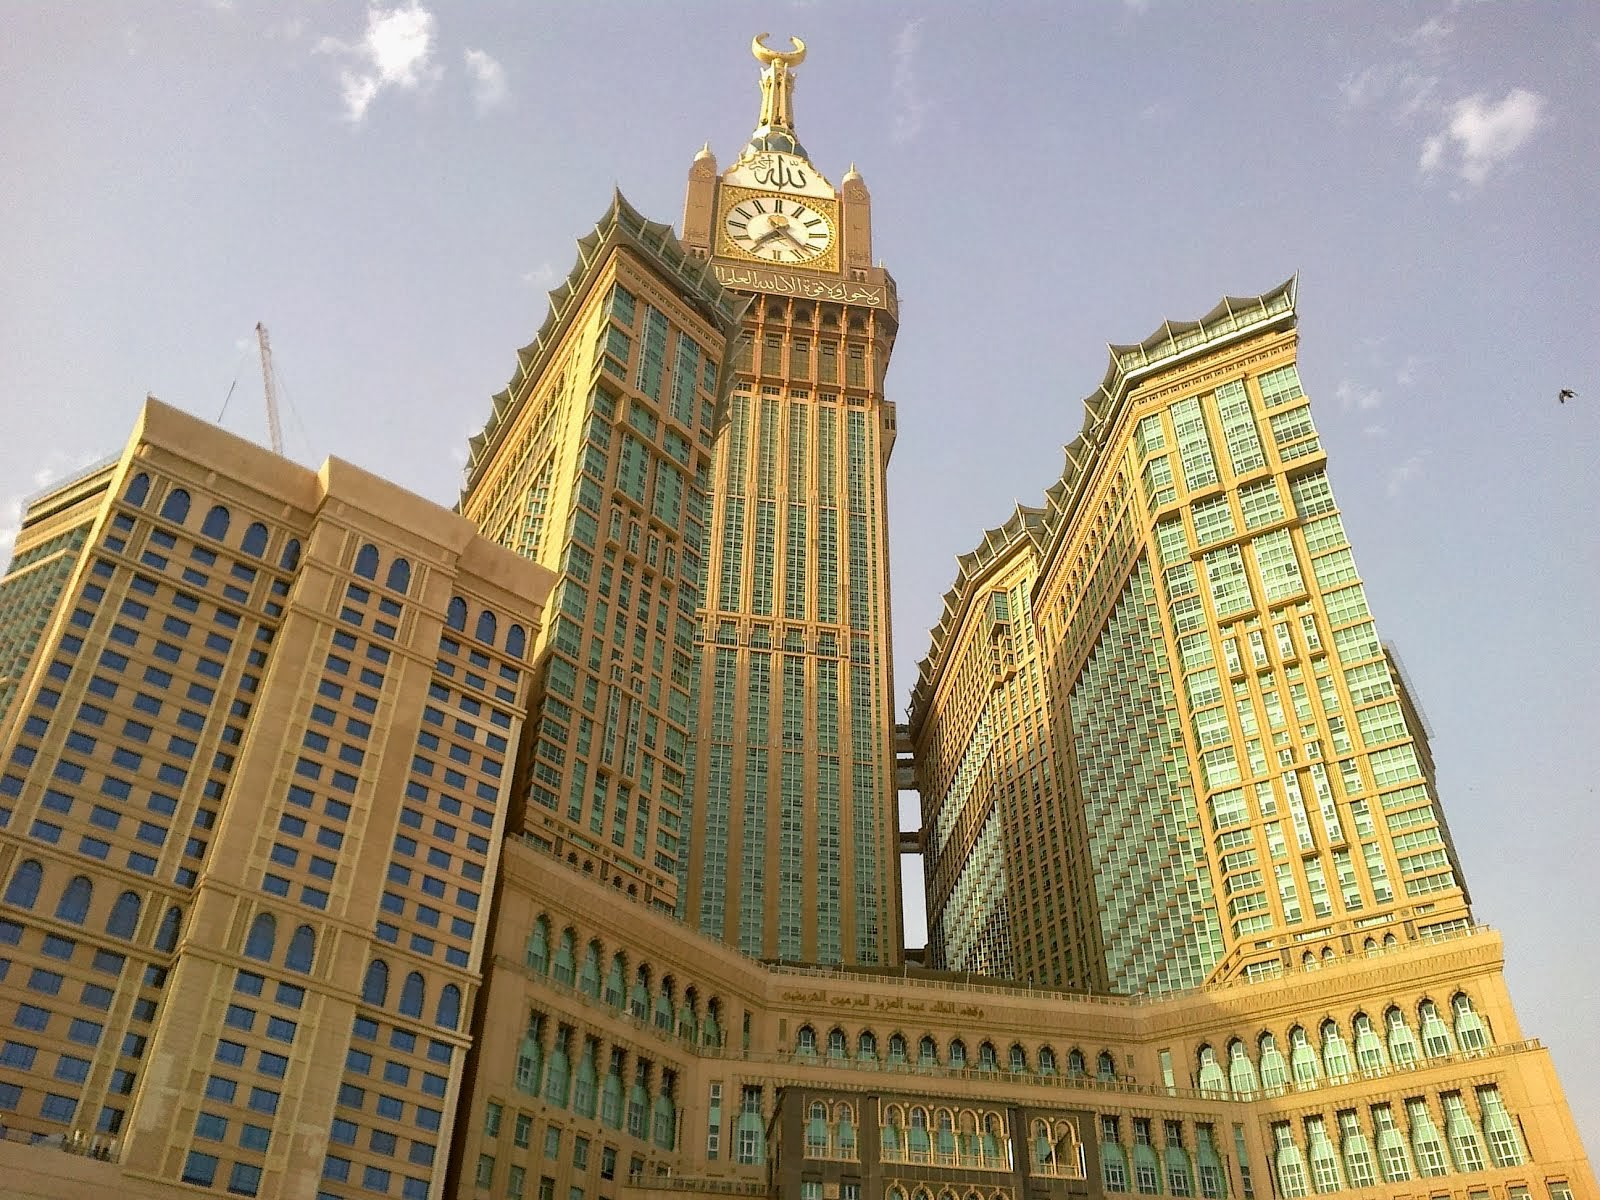 zam-zam tower